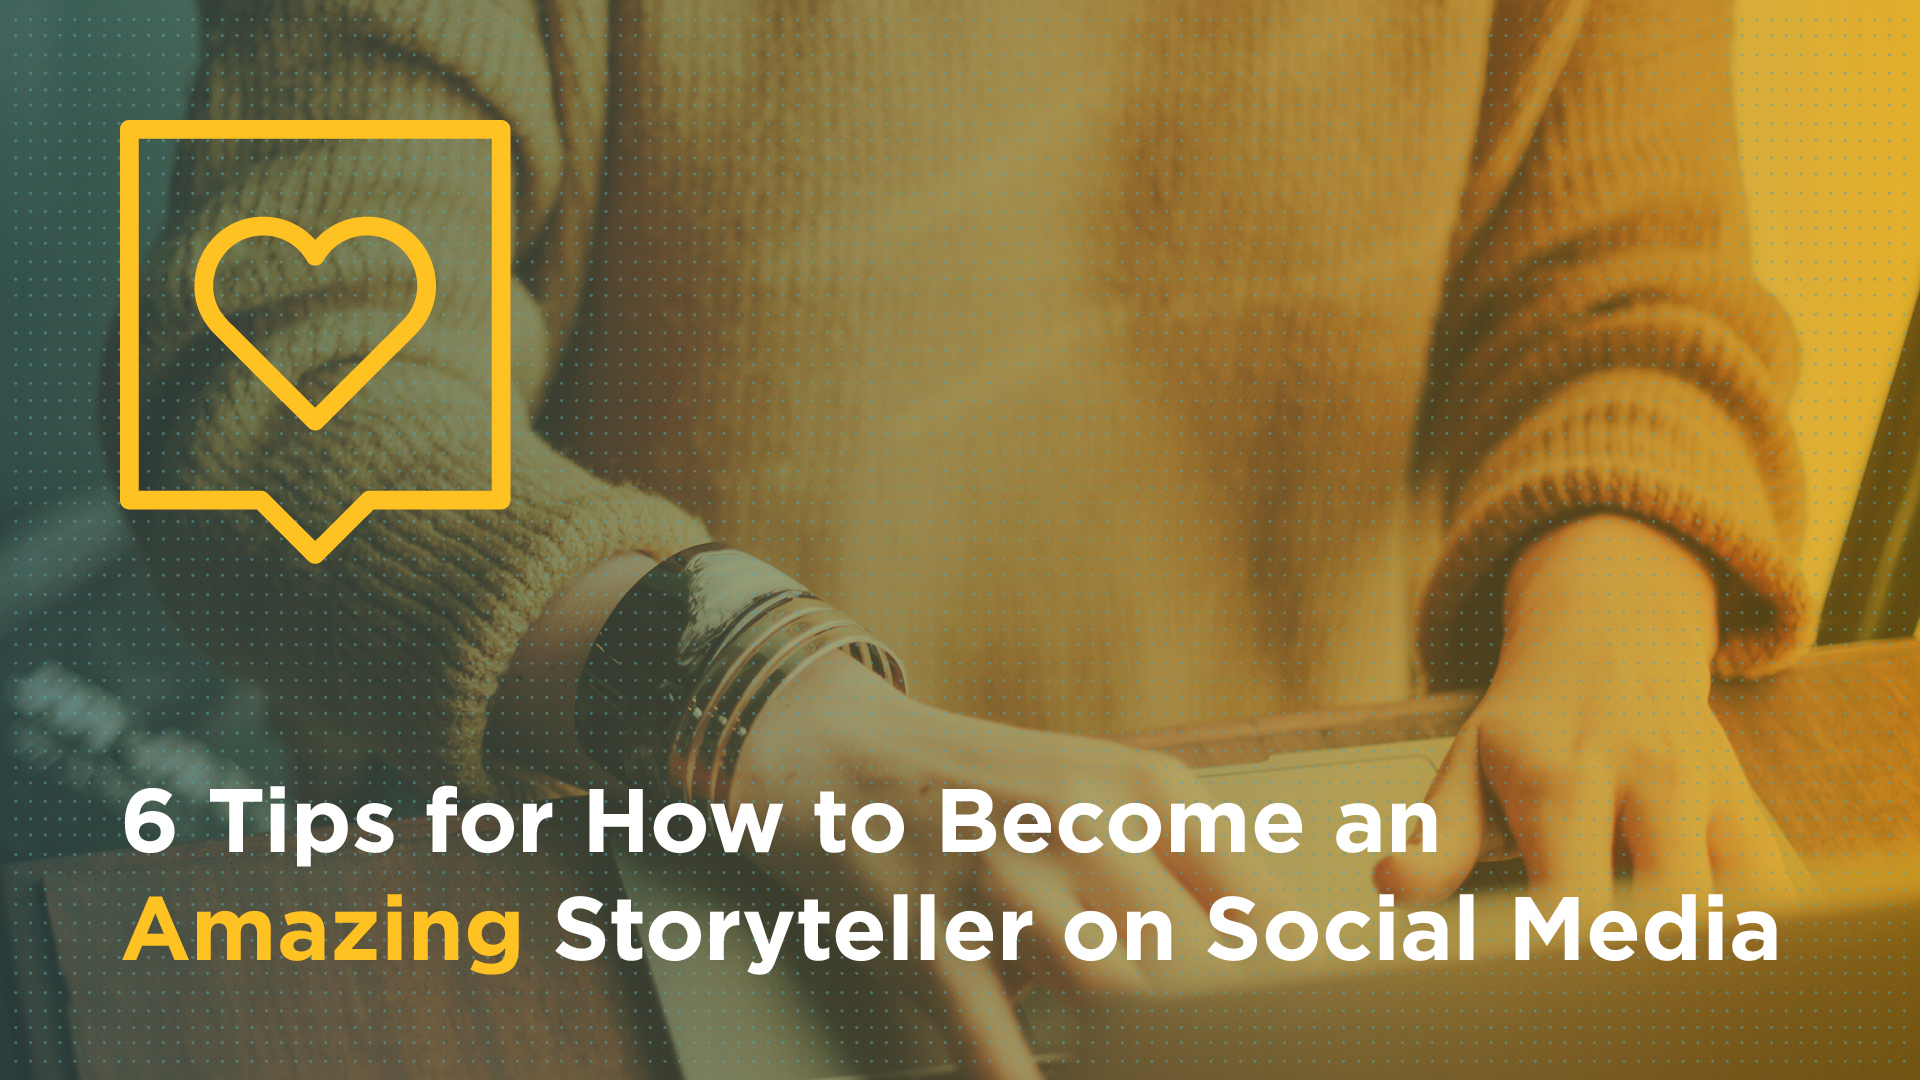 6 Tips for How to Become an AMAZING Storyteller on Social Media Featured Image